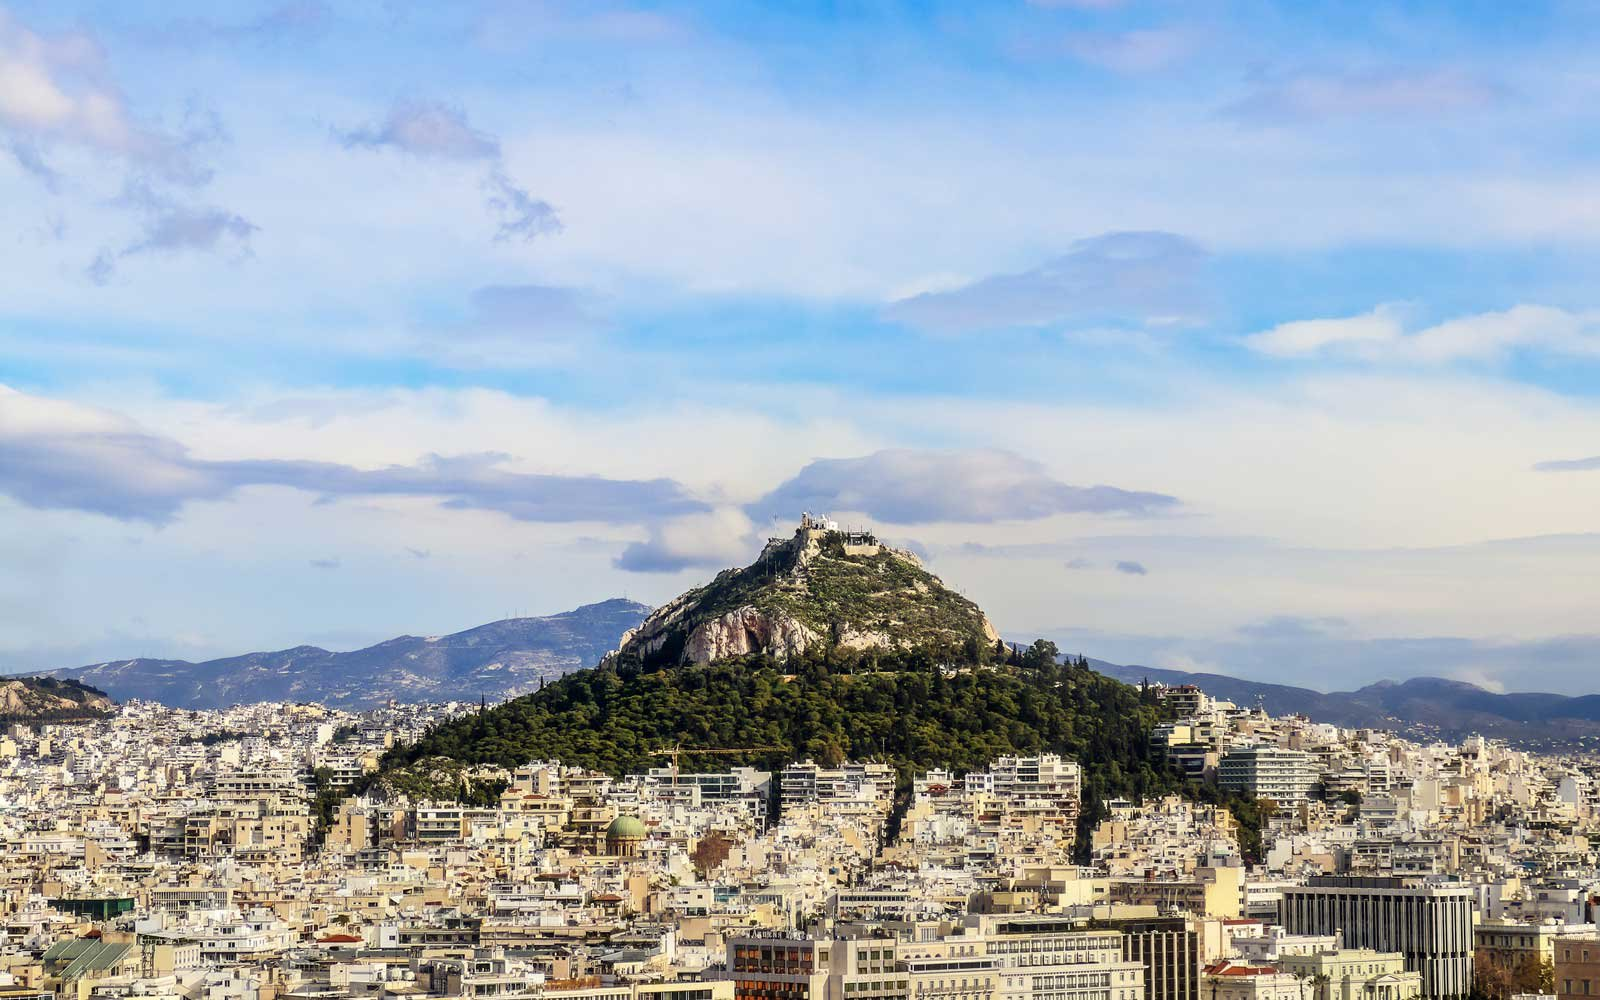 Emirates Is Having A 2 For 1 Sale On Flights To Greece